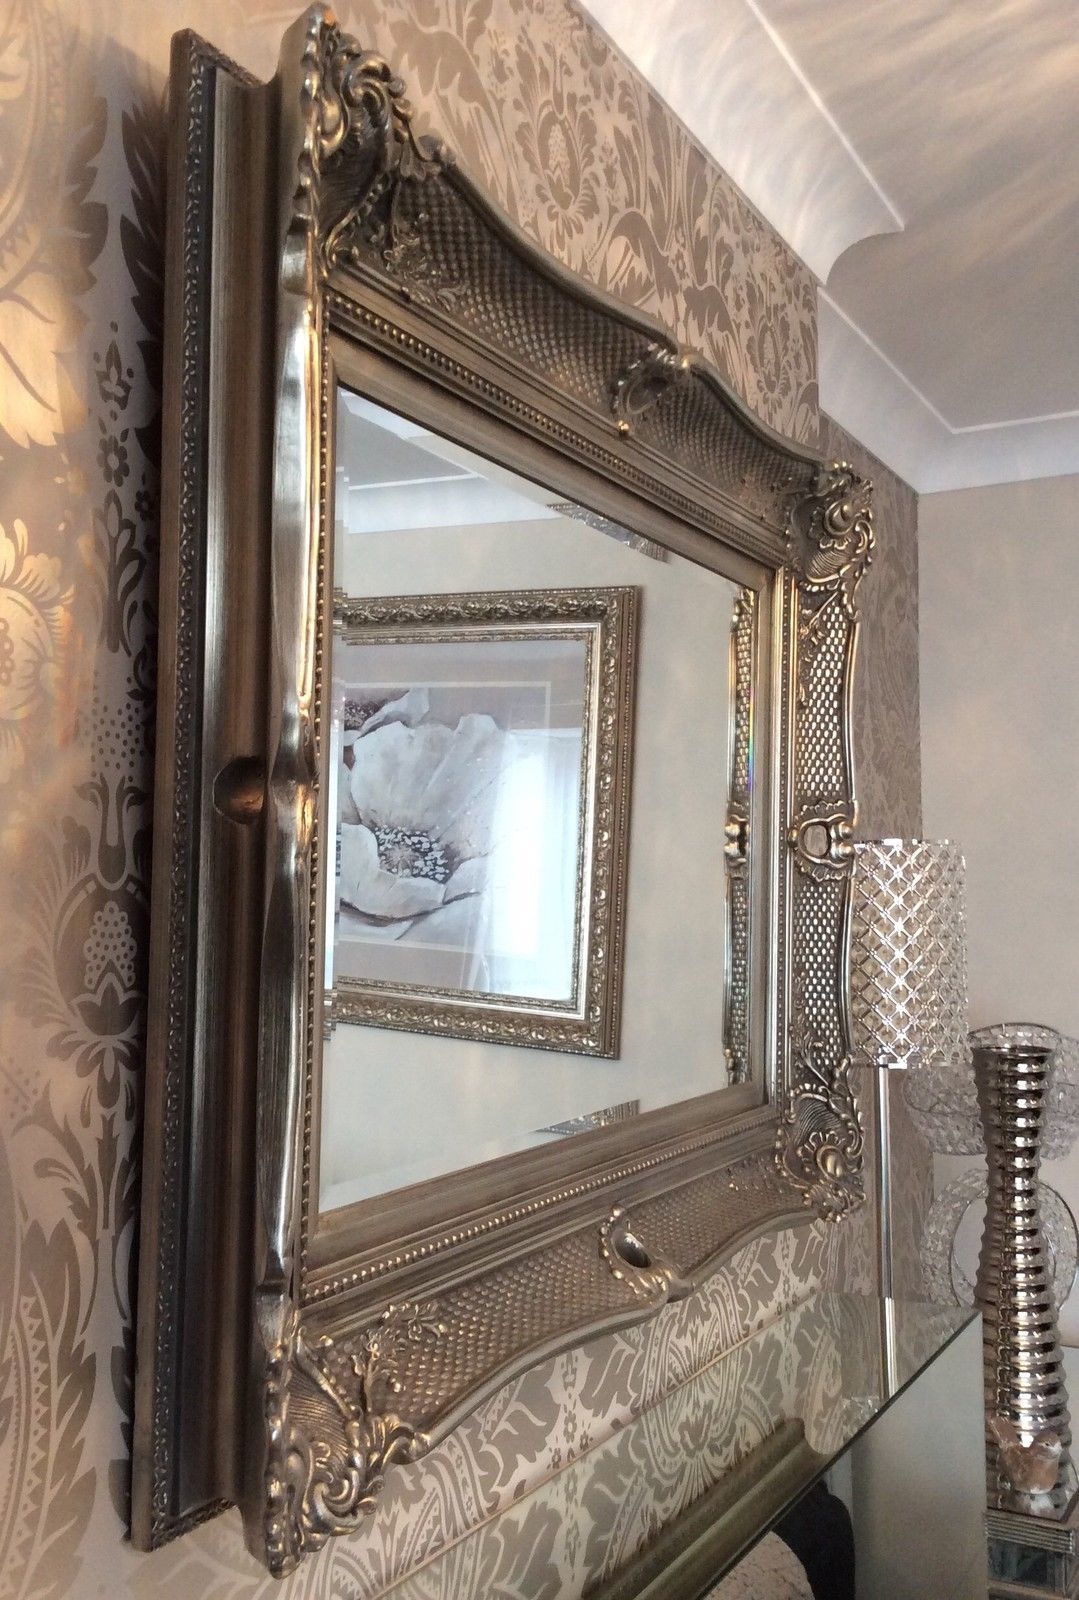 Wonderful ornate fabulous extra large wall mirror range for Large framed mirrors for walls